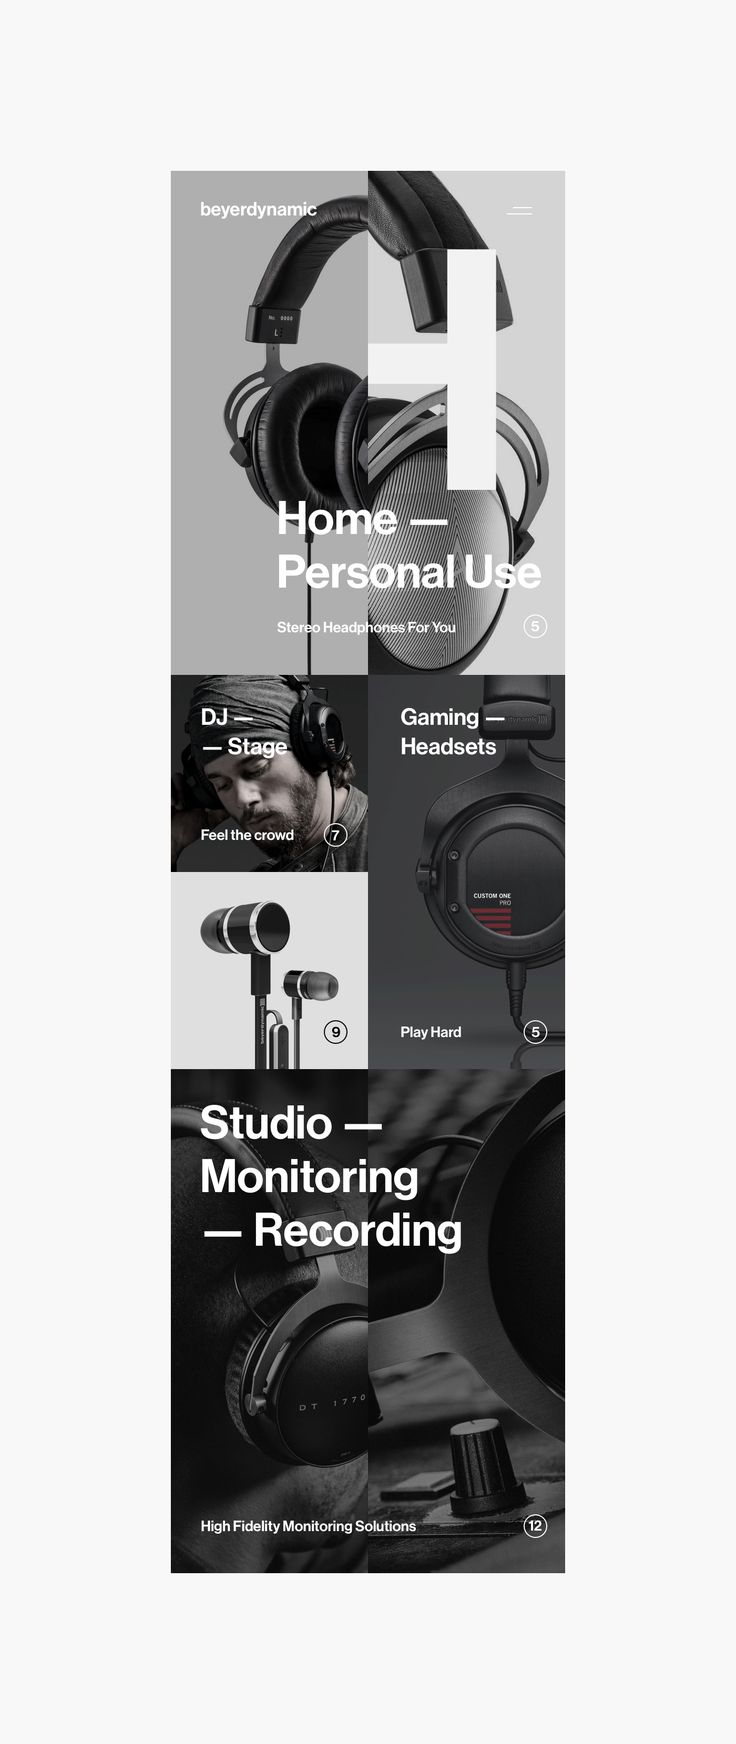 "Art direction, conceptual research and completely refreshed, new mobile web experience for Beyerdynamic company.Electrical engineer Eugen Beyer started his own company in Berlin in 1924 to build cinema speakers. His ""Elektrotechnische Fabrik Eugen Beyer…"